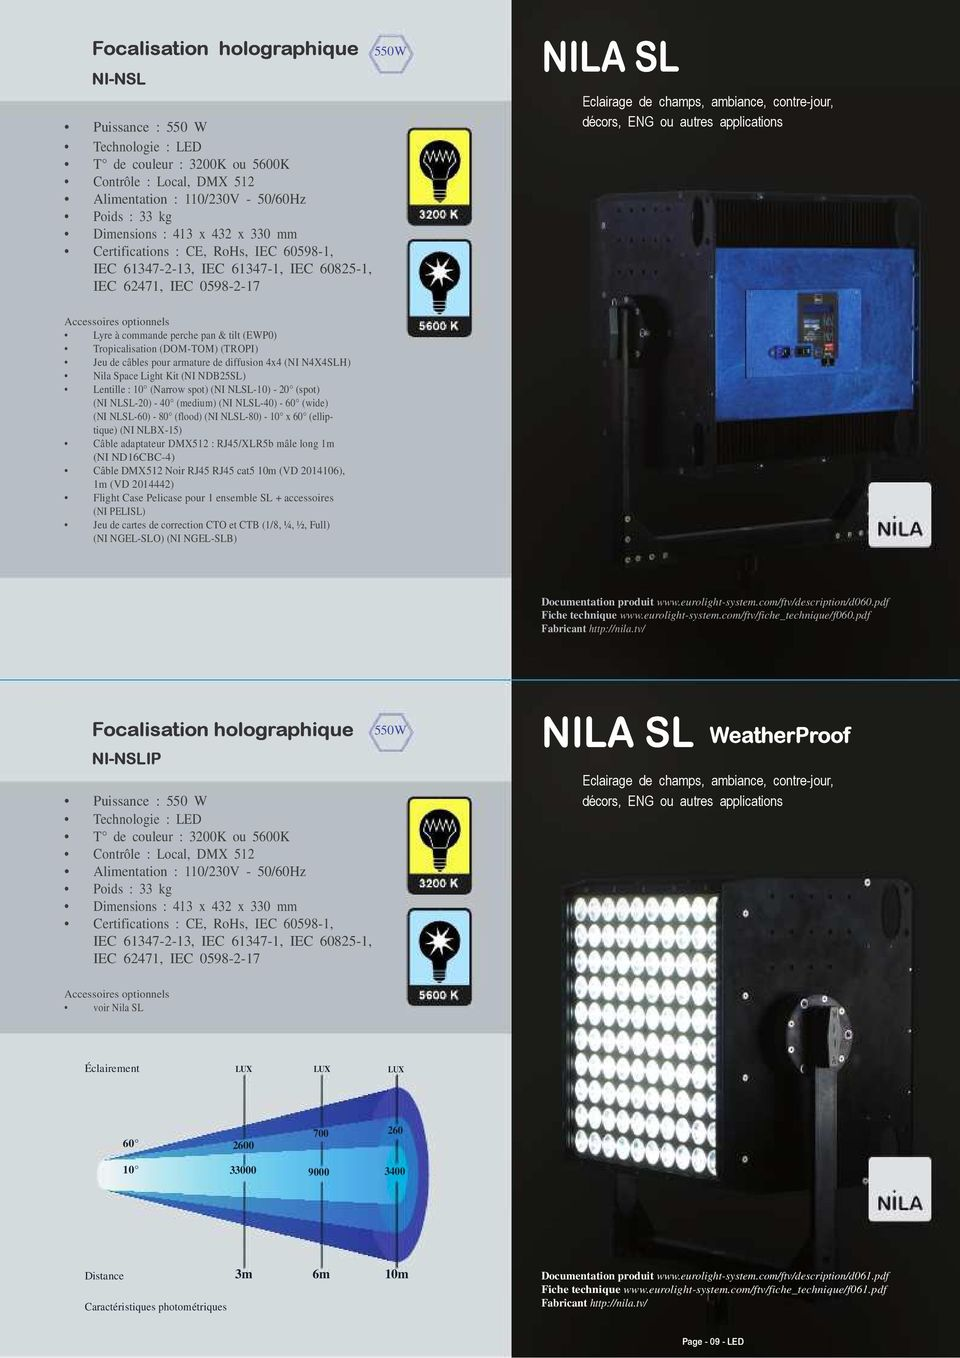 Space Light Kit (NI NDB25SL) Lentille : 10 (Narrow spot) (NI NLSL-10) - 20 (spot) (NI NLSL-20) - 40 (medium) (NI NLSL-40) - 60 (wide) (NI NLSL-60) - 80 (flood) (NI NLSL-80) - 10 x 60 (elliptique) (NI